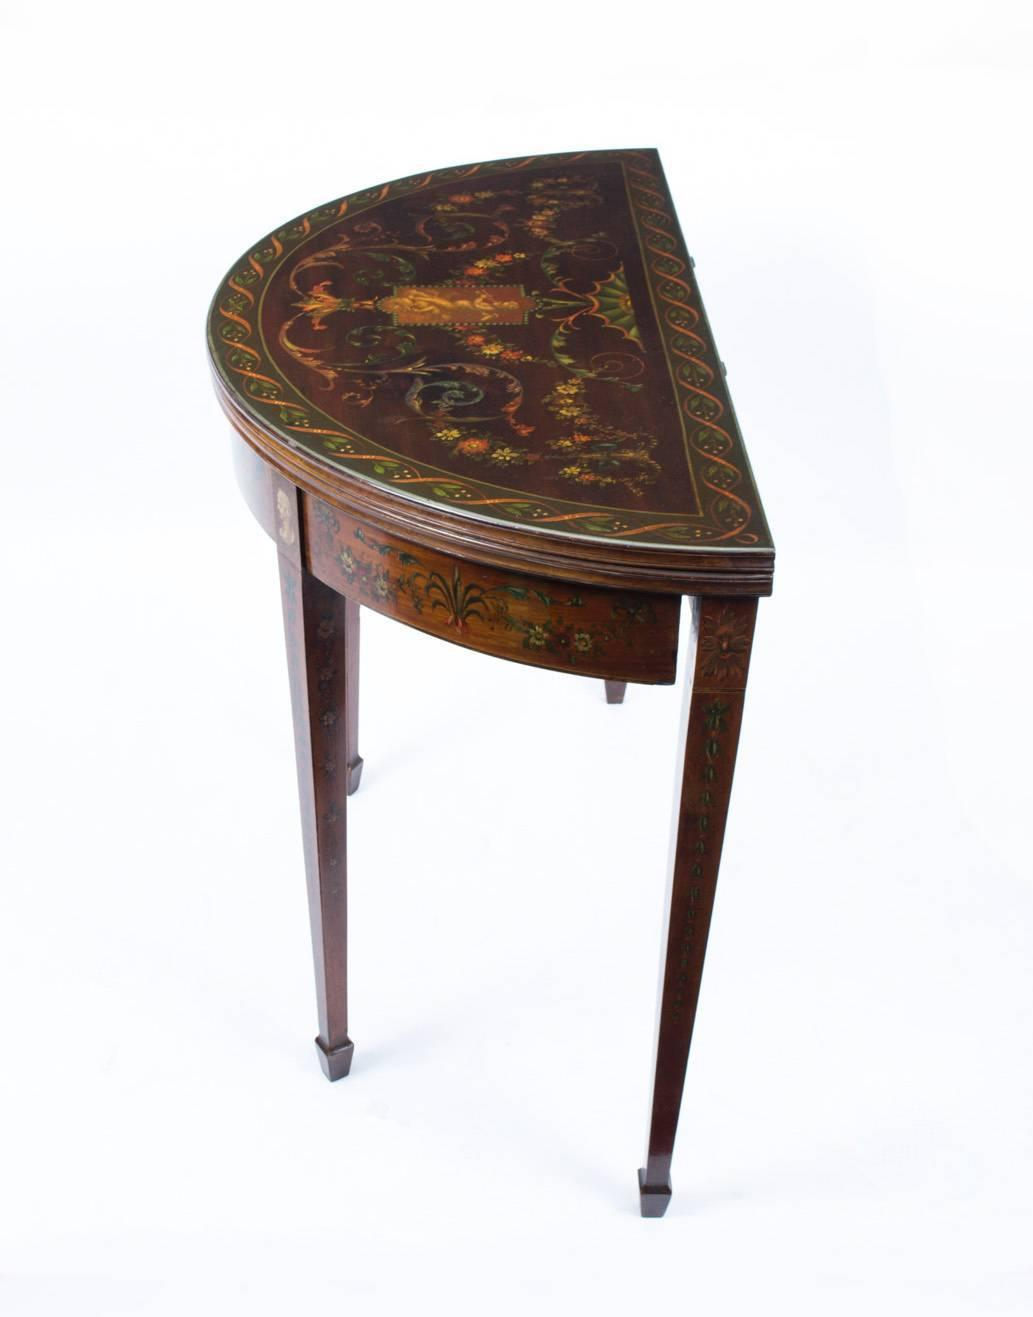 Antique half moon card console table circa 1870 for sale for 10 inch depth console table